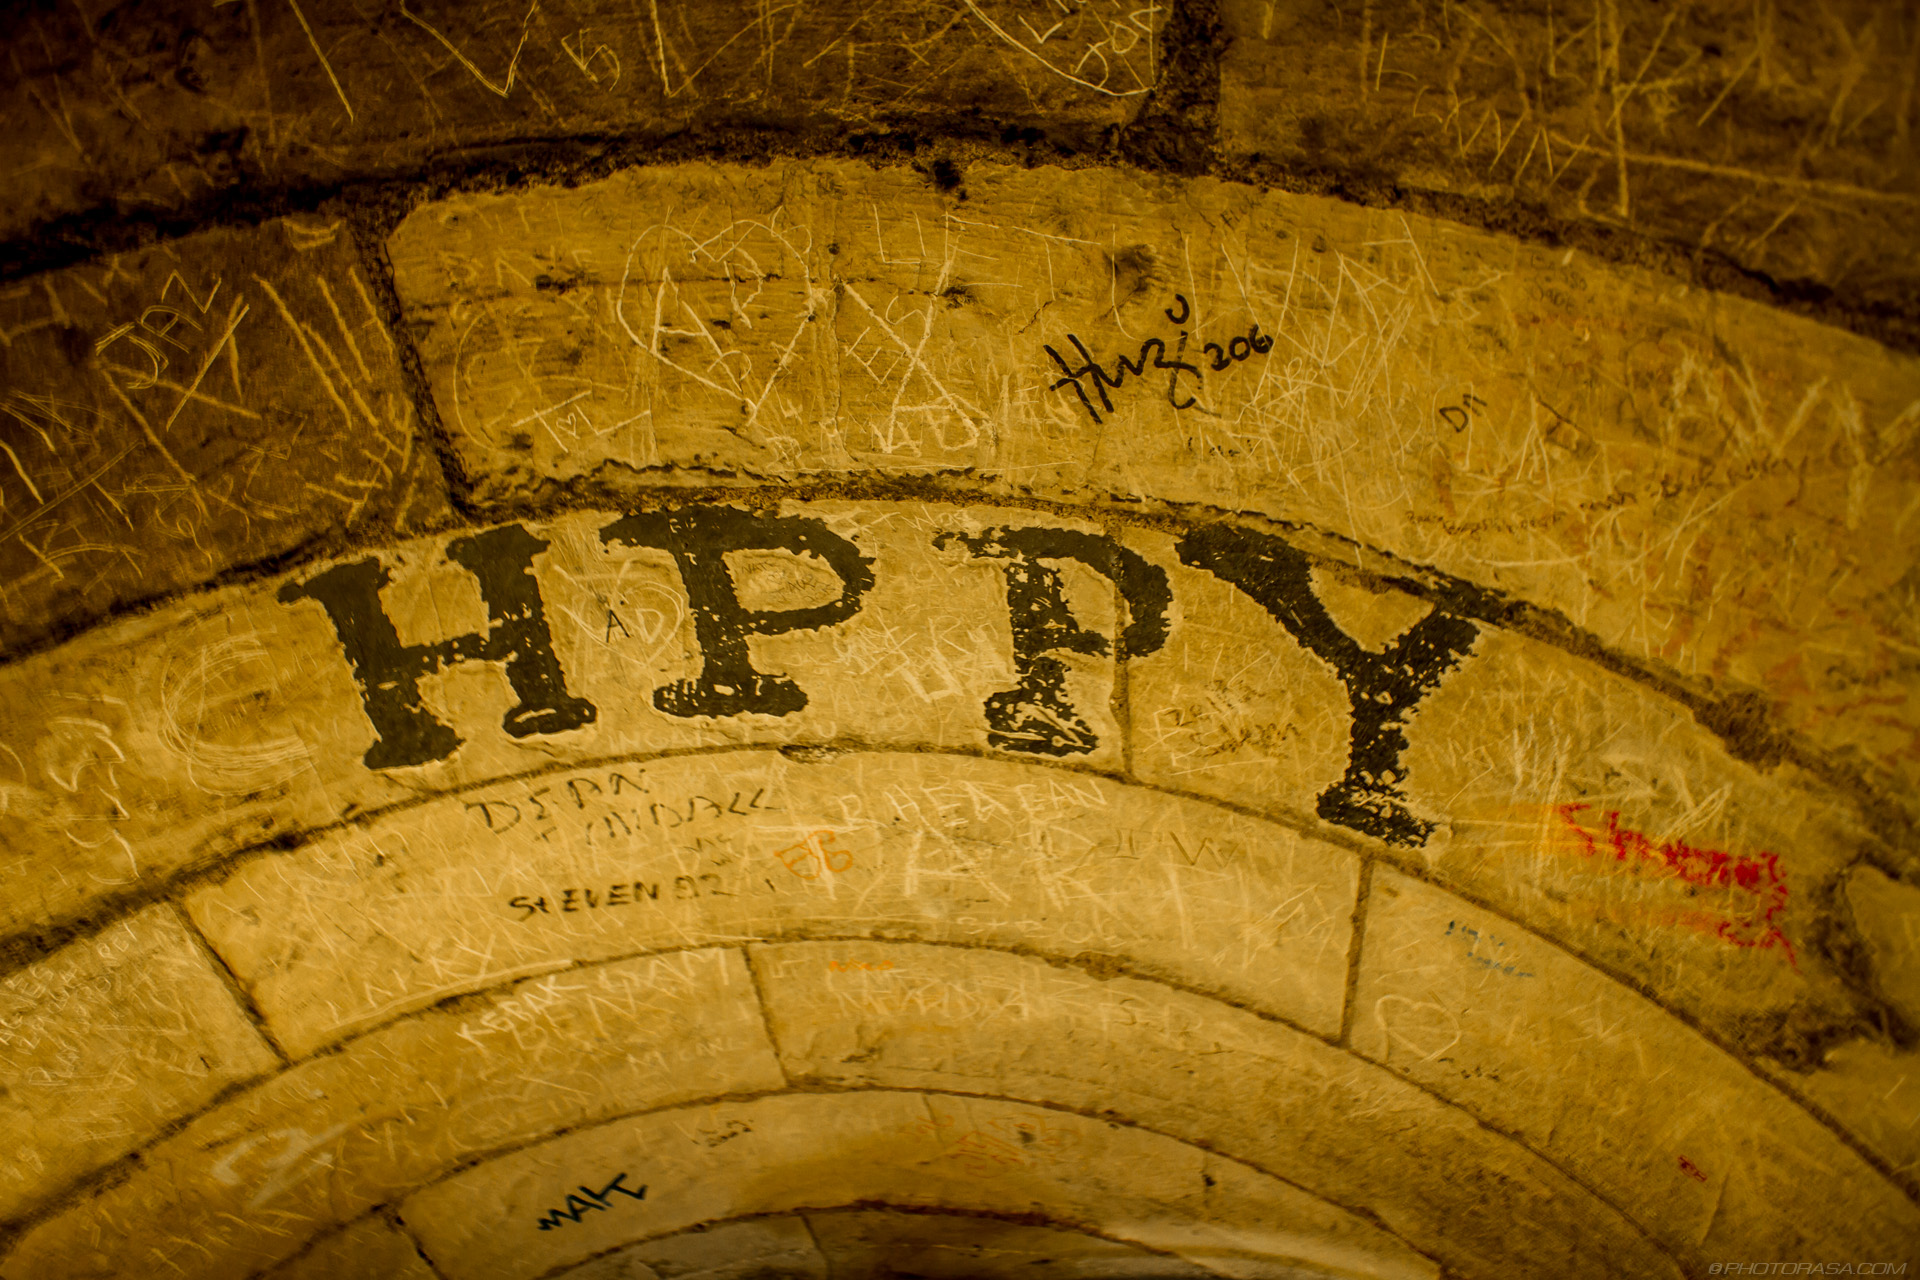 http://photorasa.com/yorkminster-cathedral/hppy-big-letter-graffiti/